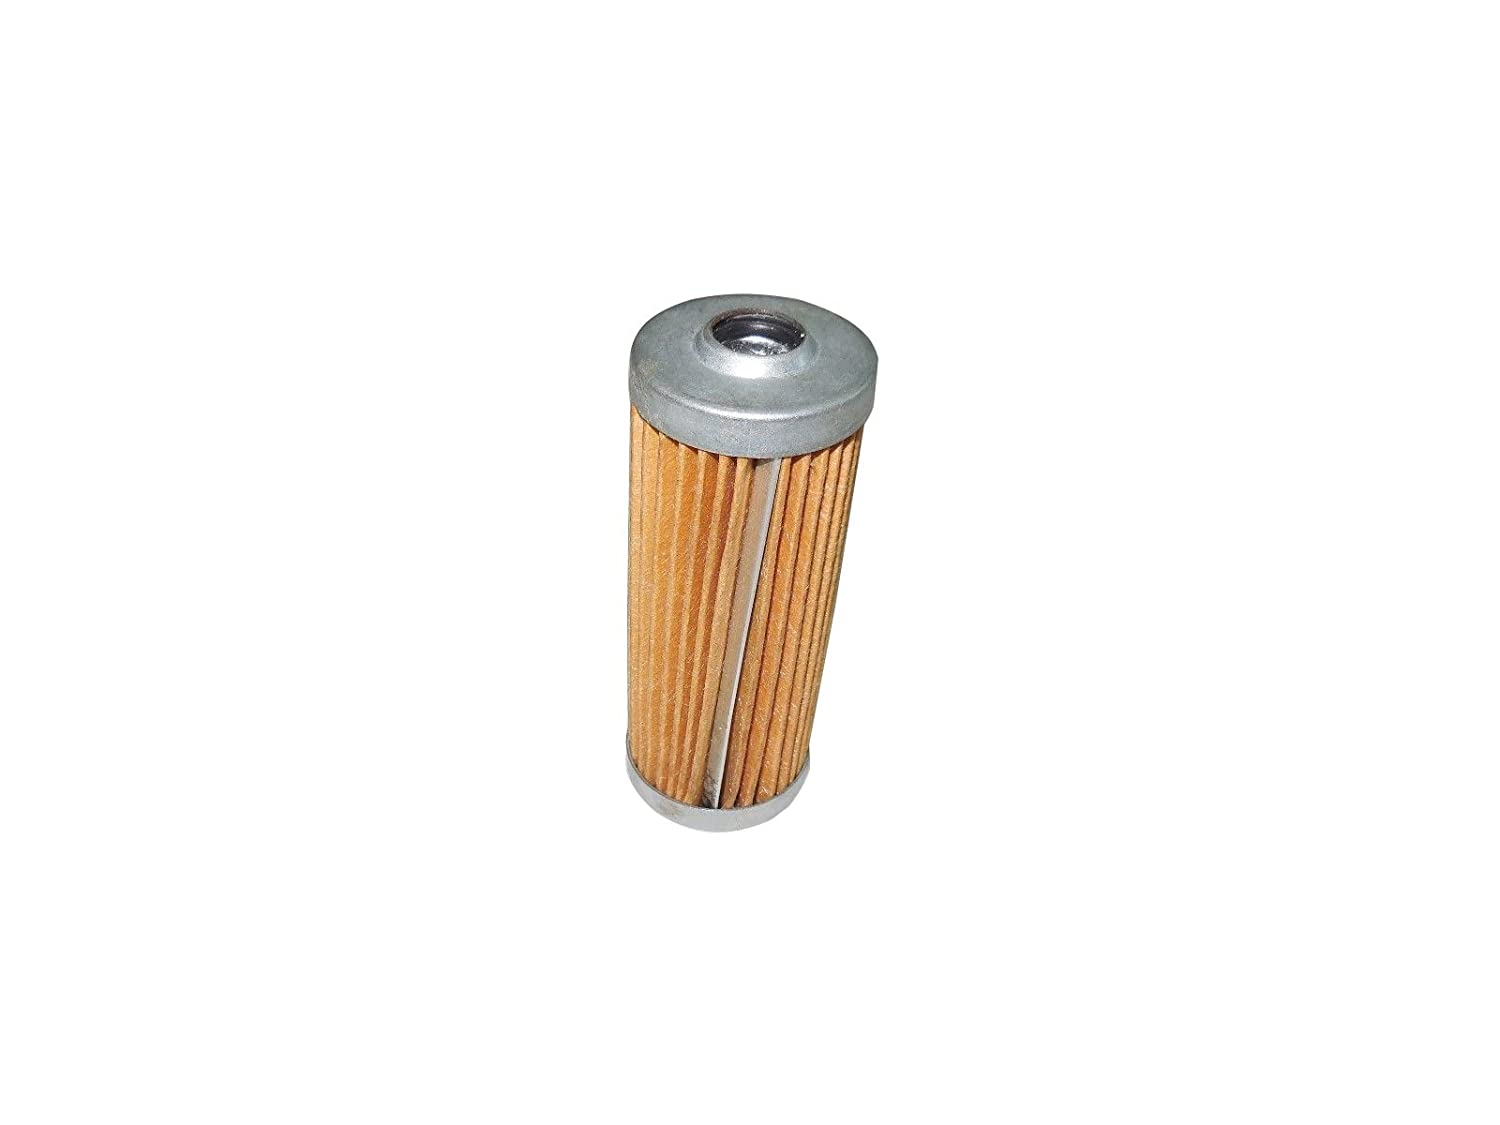 CH10479 M801101 New Fuel Filter with O-ring Fits John Deere 8970713480